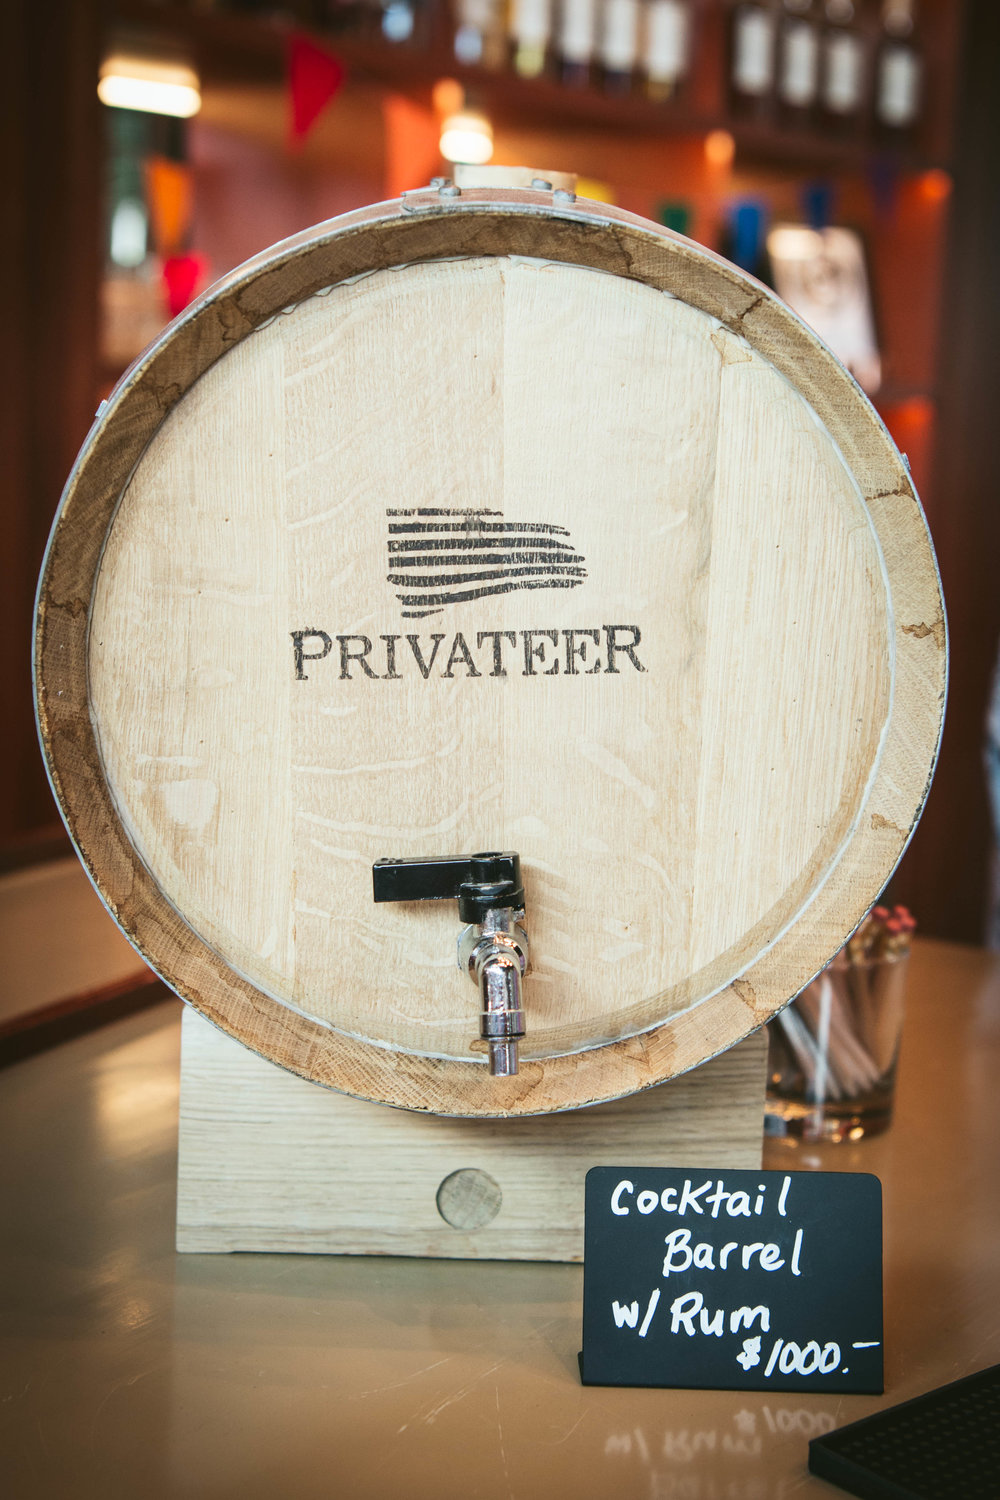 About Privateer Rum - Fittingly situated in the coastal town of Ipswich, Massachusetts, this craft distillery produces unfiltered, unsweetened, and unadulterated small batch rum. Made in New England with a commitment to best practices and a belief that the best ingredients produce the best products.